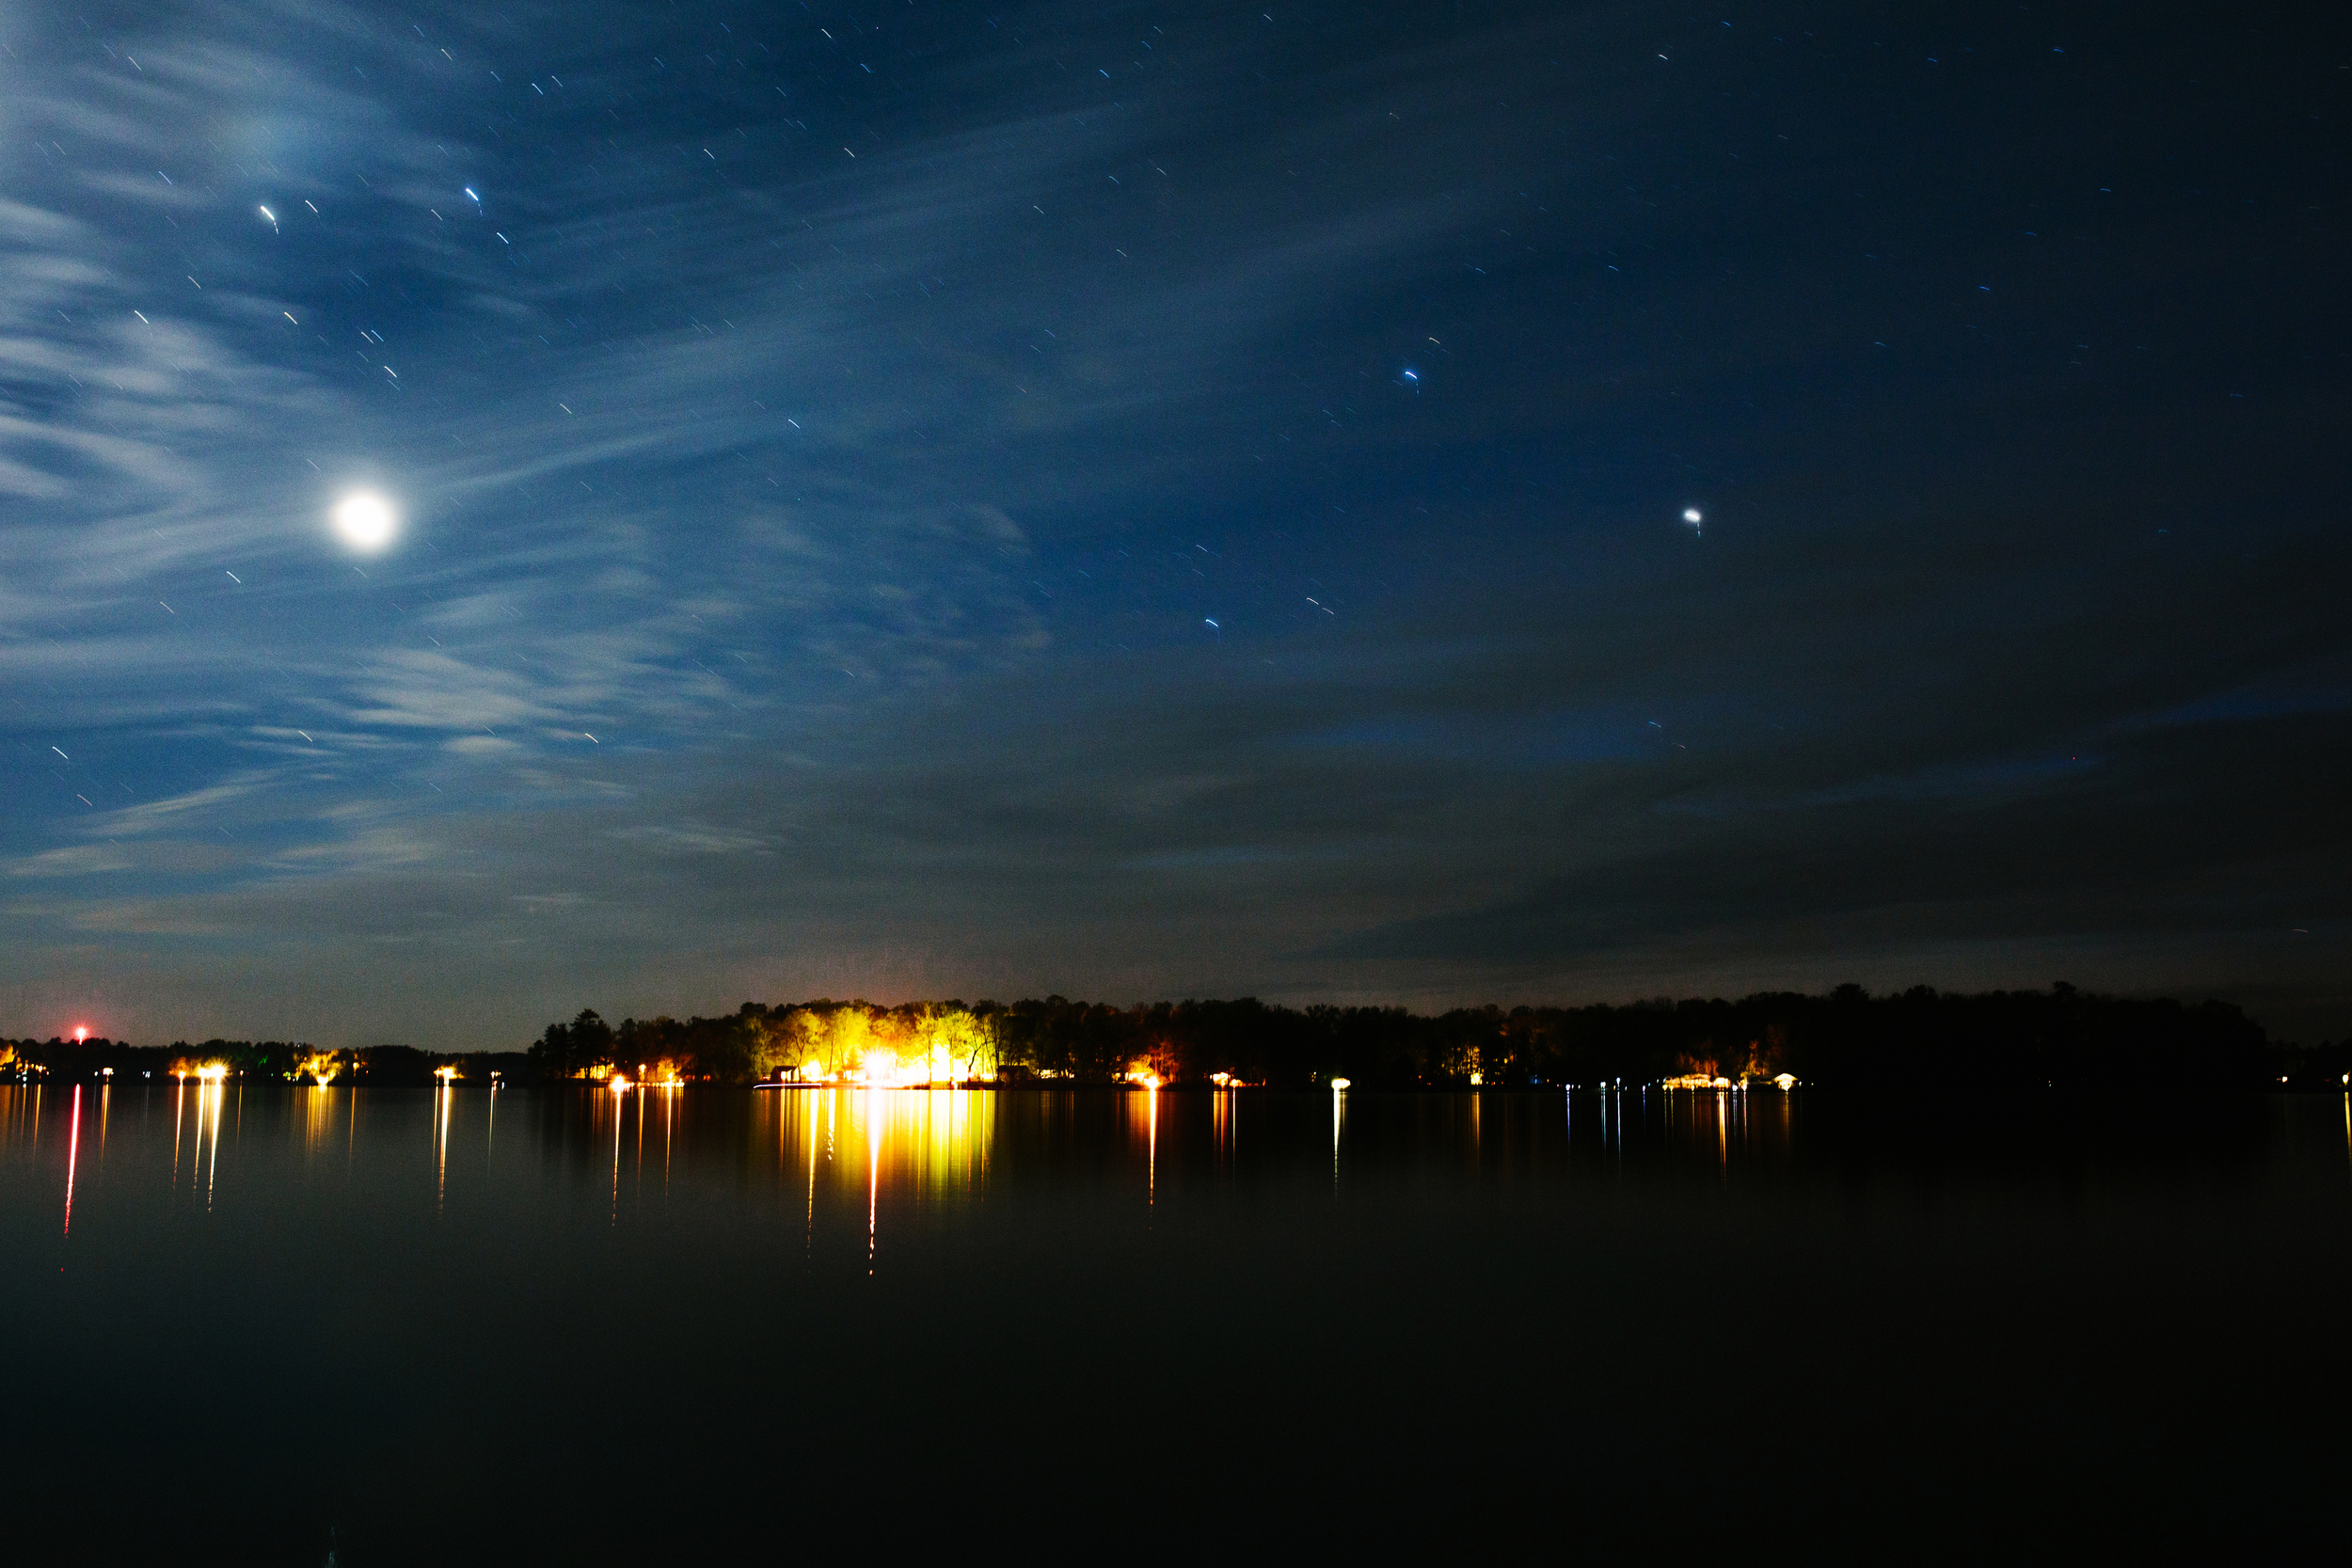 The lake, and some playing around with nighttime photography.